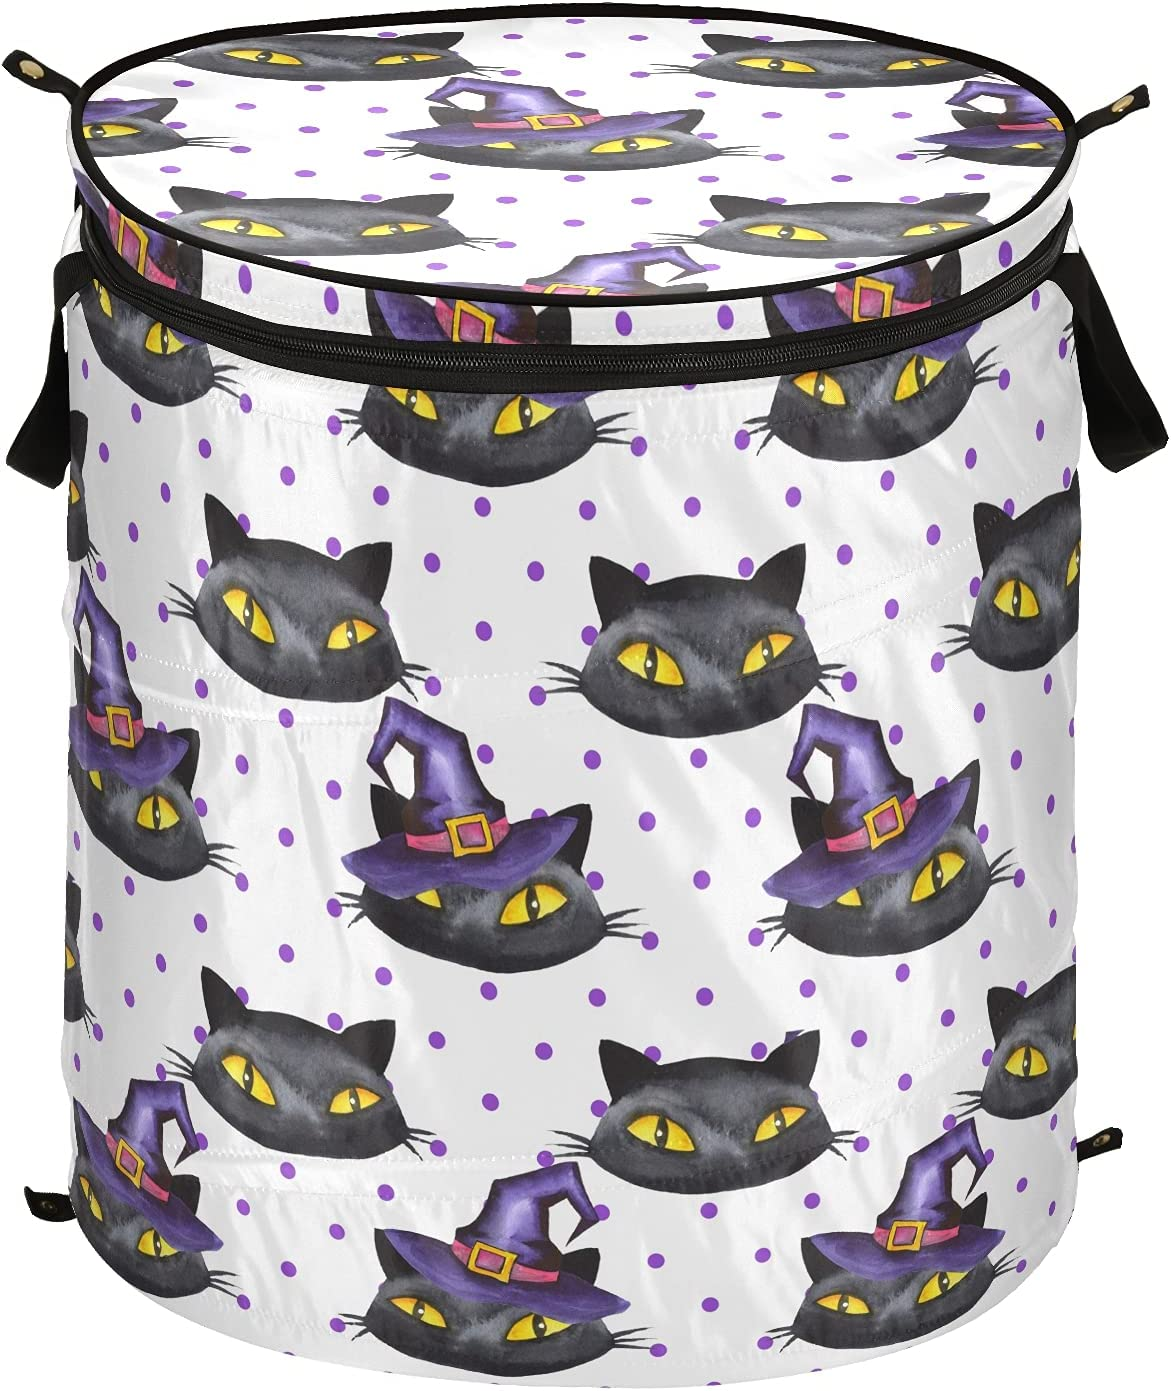 Halloween Black Cat Pop Up Laundry Foldable overseas Lid Direct stock discount Hamper Stor with